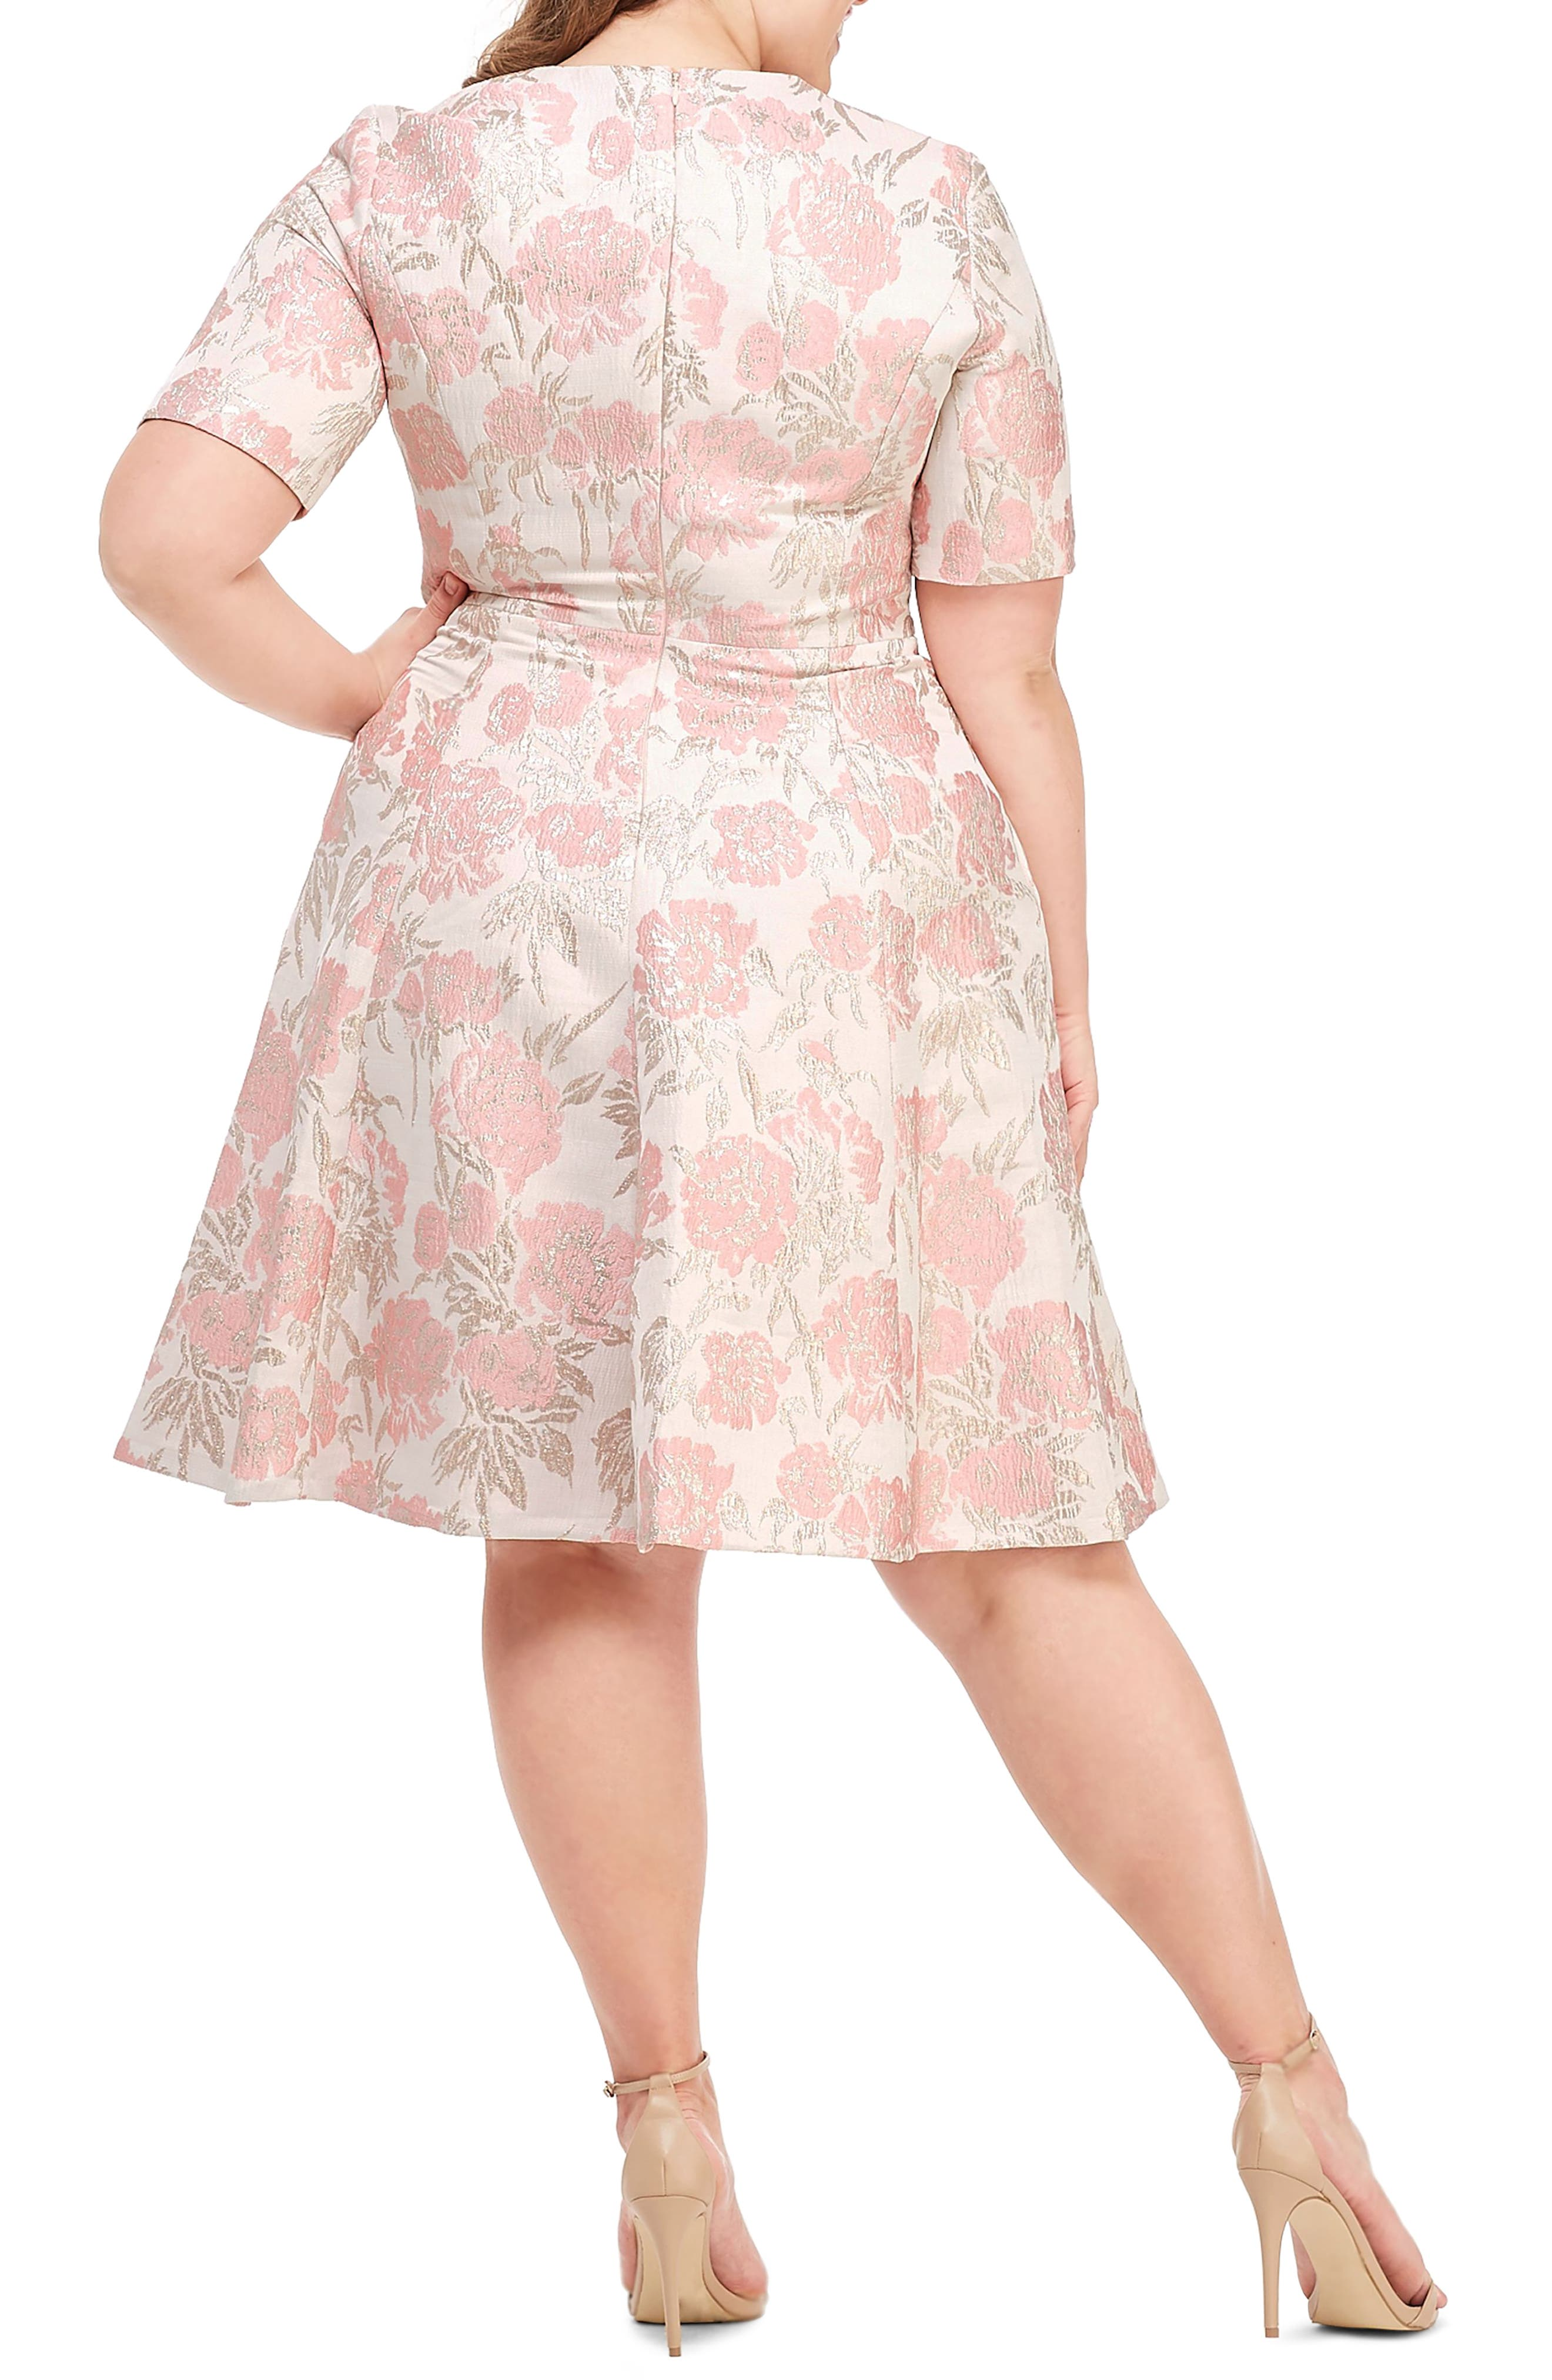 GAL MEETS GLAM COLLECTION, Adair Pink Passion Rose Jacquard Fit & Flare Dress, Alternate thumbnail 8, color, 685